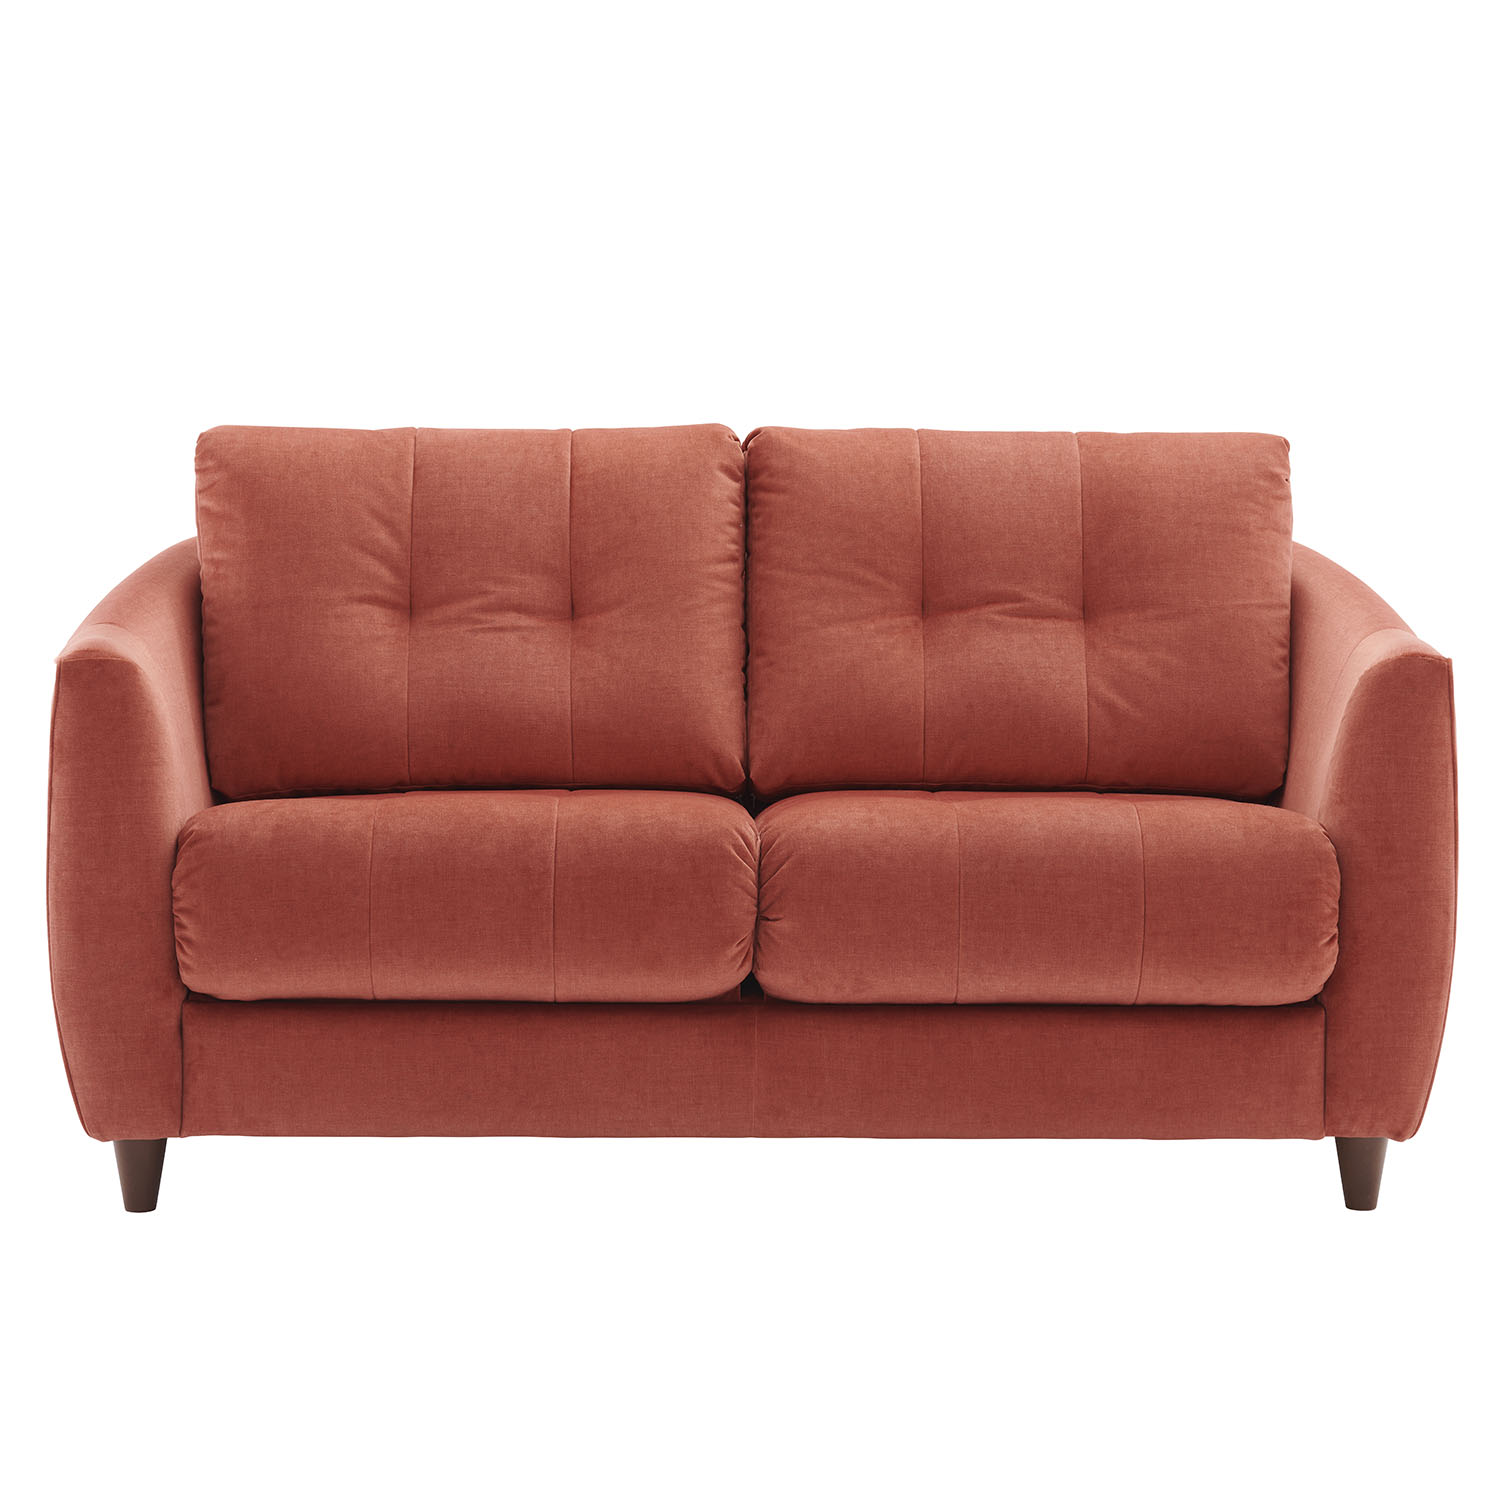 G Plan Nancy Small Sofa RHF